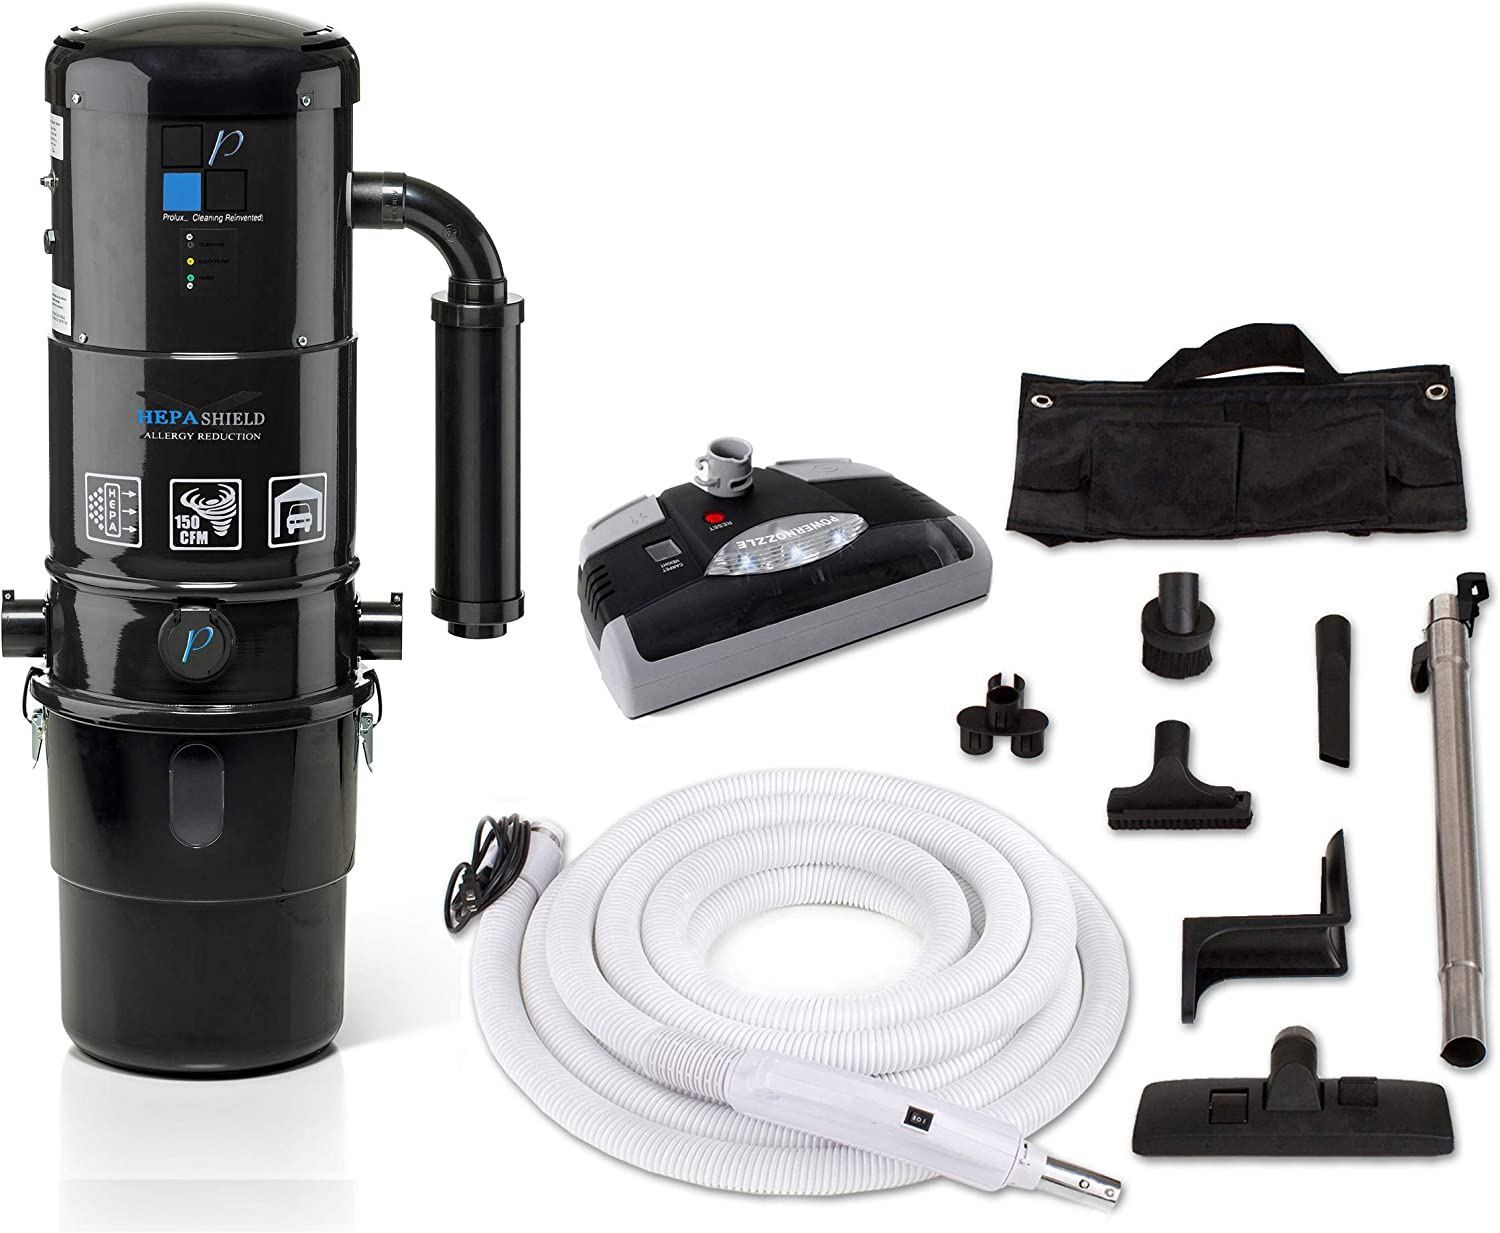 Prolux CV12000 Black Central Vacuum Unit System with Electric Hose Power Nozzle Kit and 25 Year Warranty